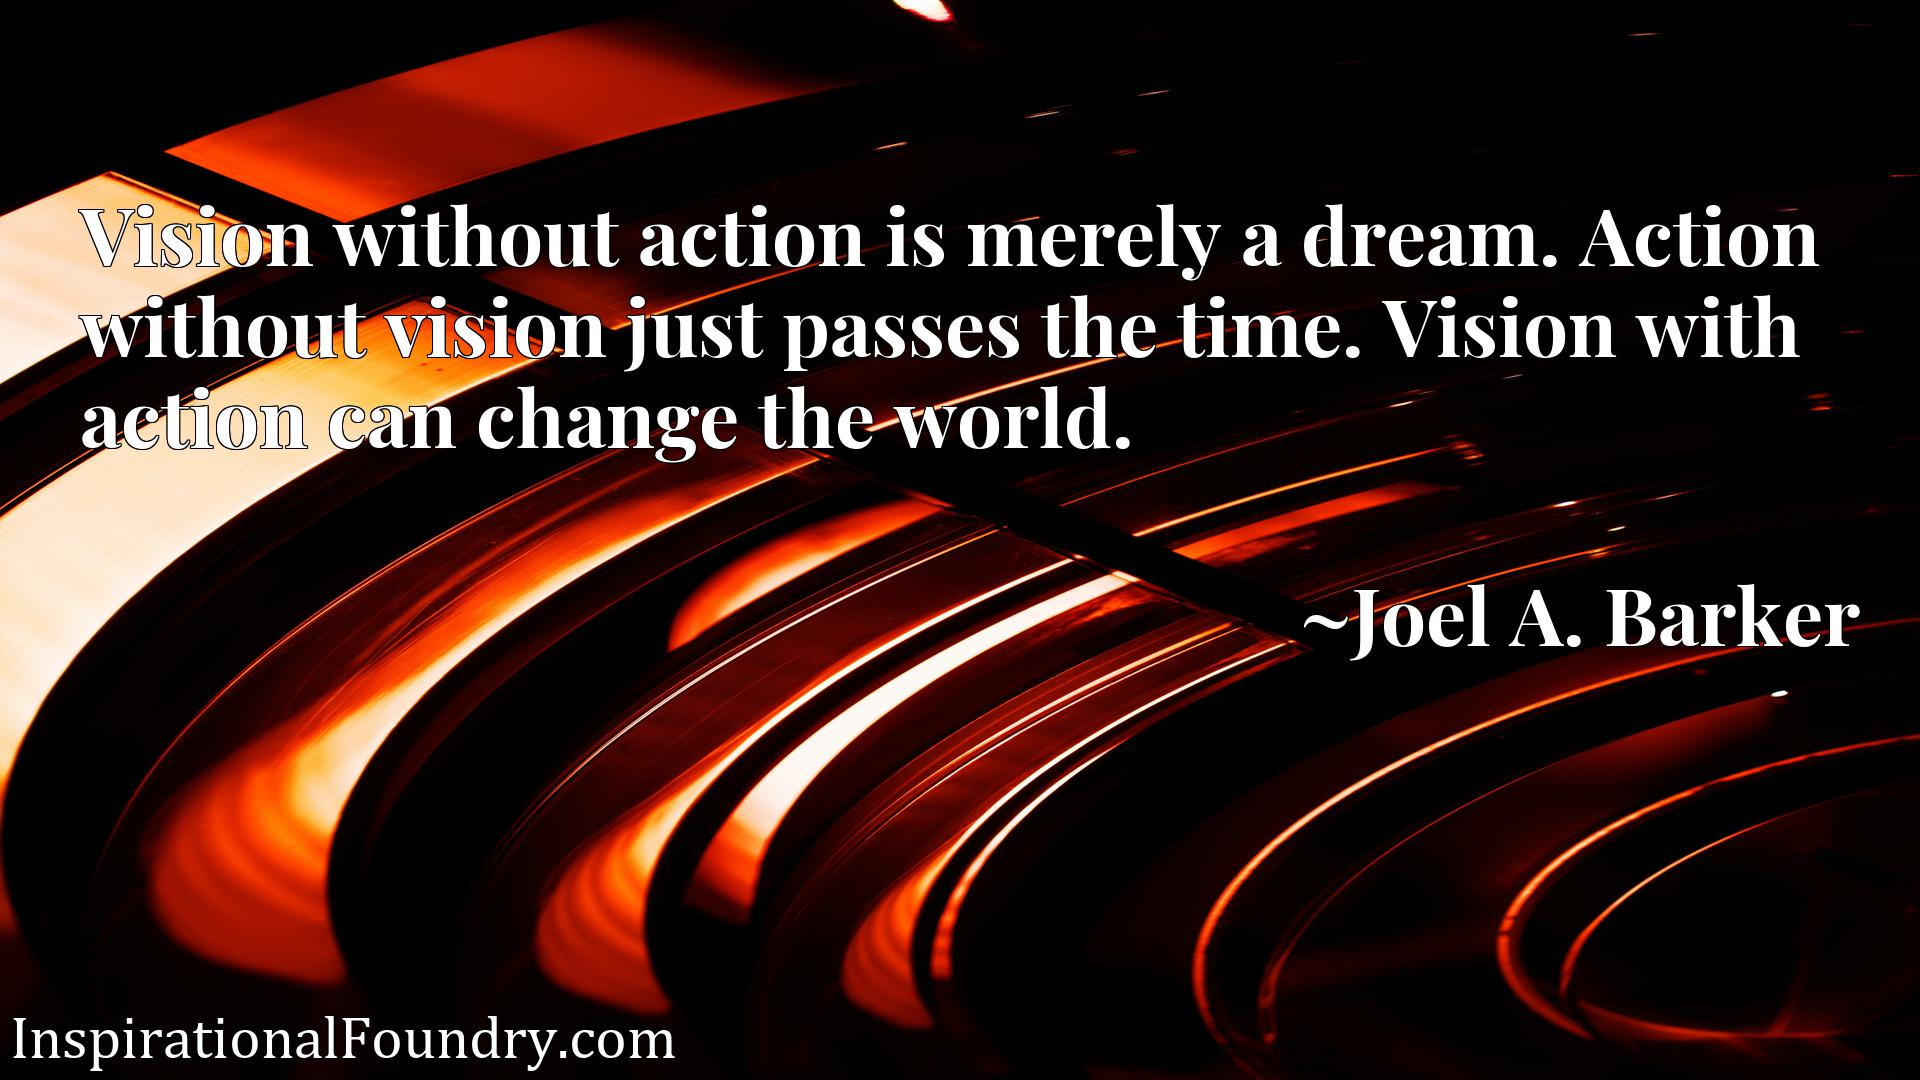 Vision without action is merely a dream. Action without vision just passes the time. Vision with action can change the world.